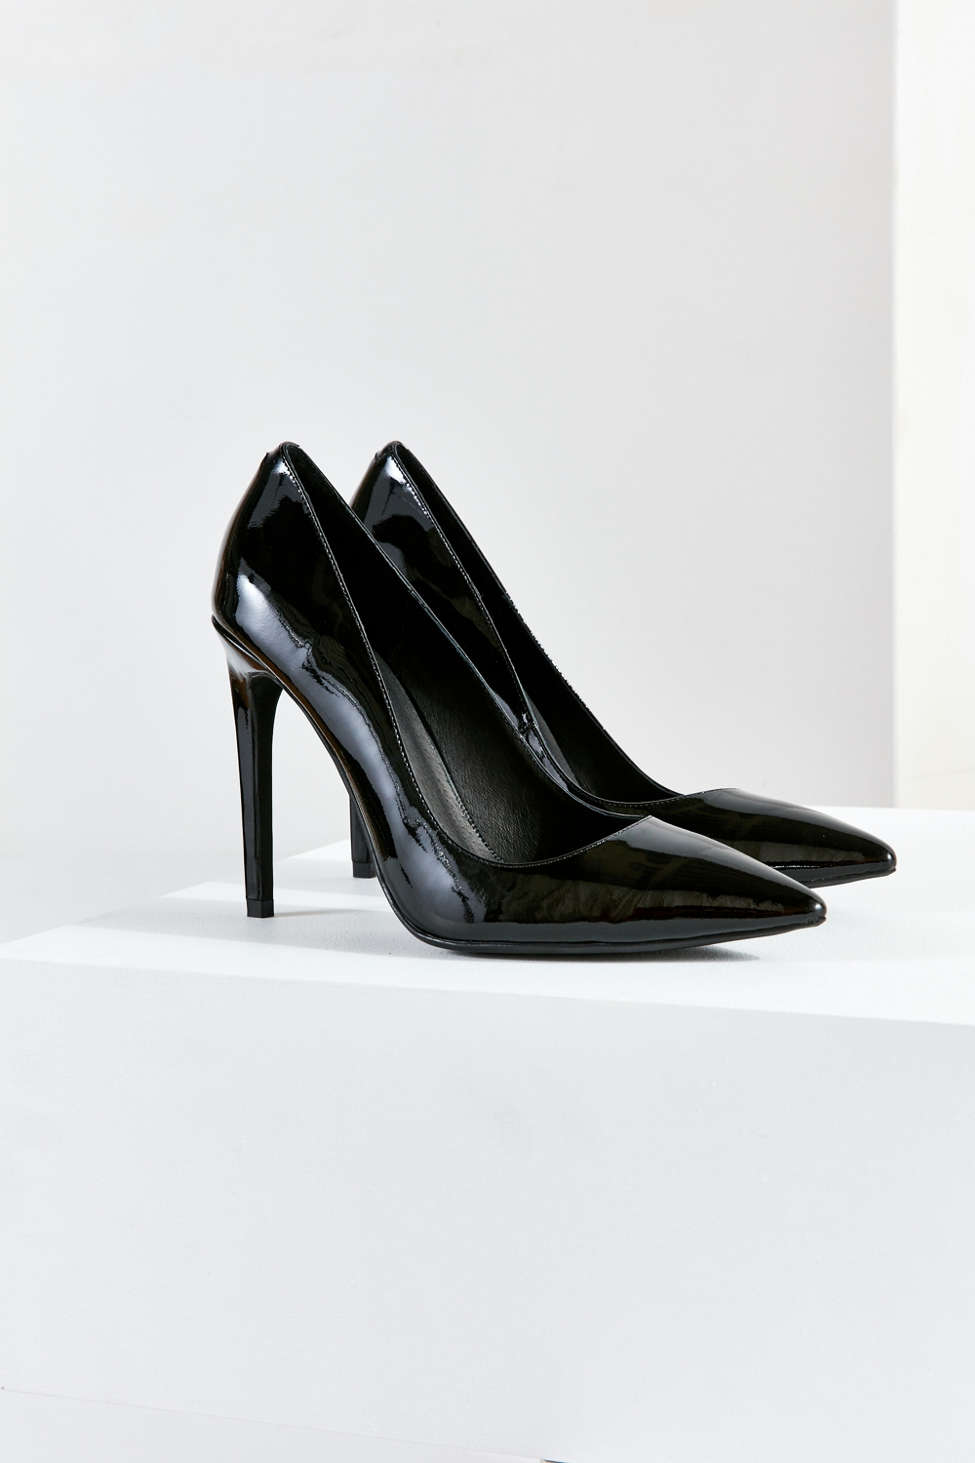 6839c19c805 The classic black stiletto. It goes with everything